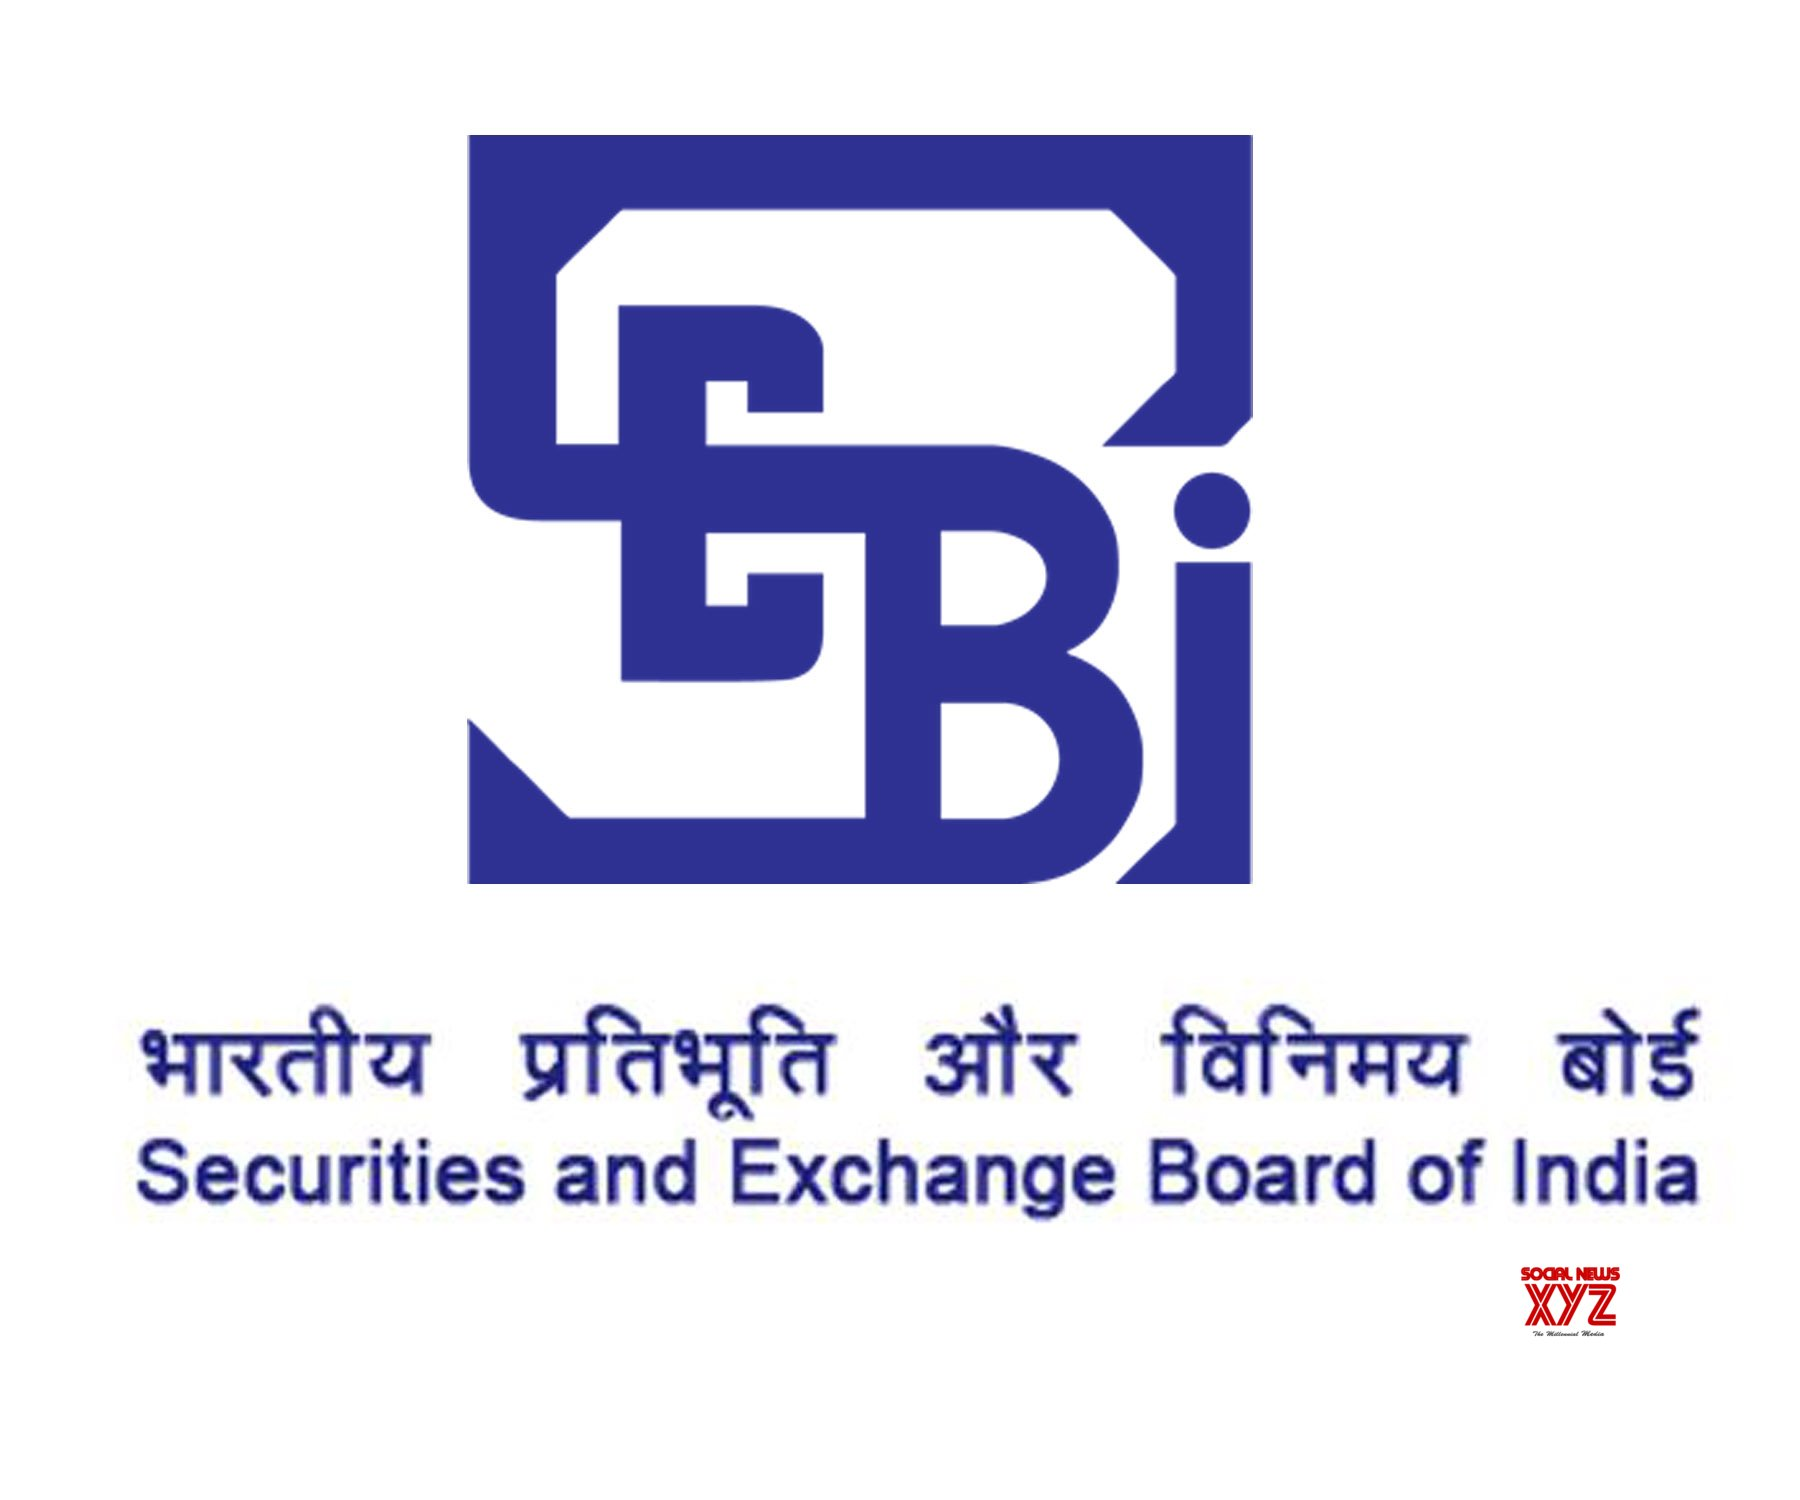 Mf Group Sebi Issues Two Show Cause Notice To Hdfc Mf On Essels Group